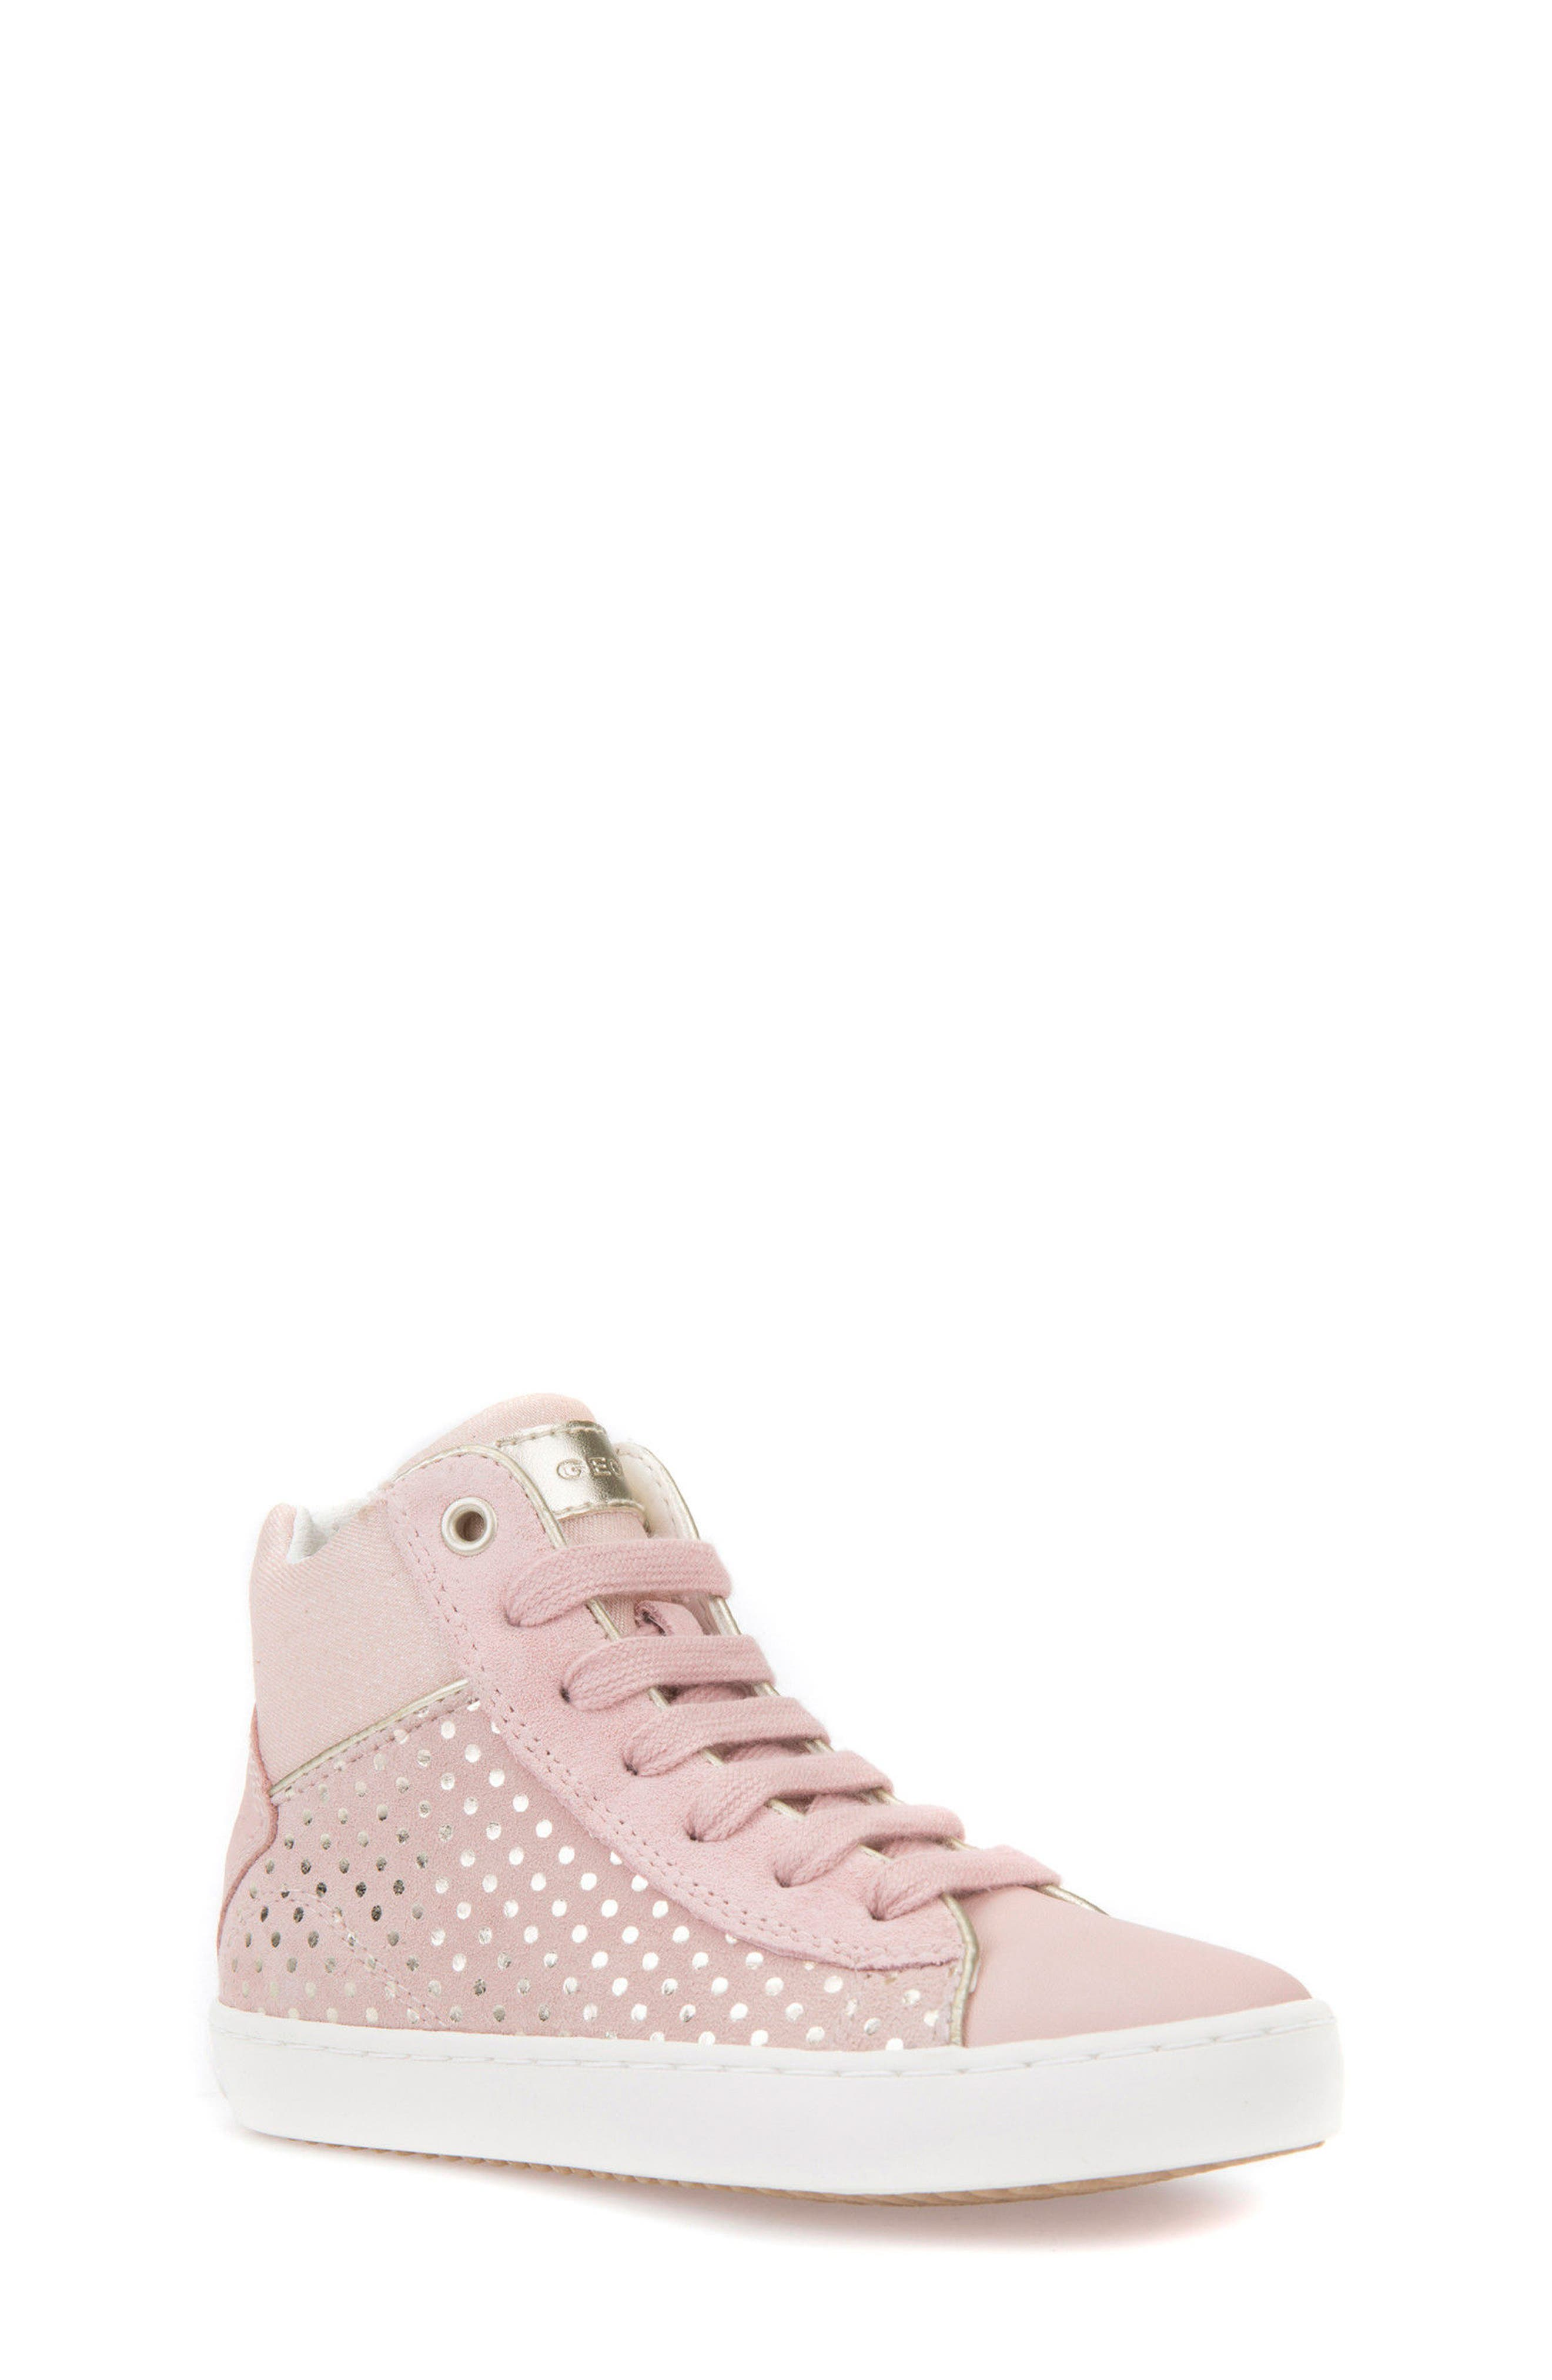 Kilwi High Top Zip Sneaker,                         Main,                         color, ROSE